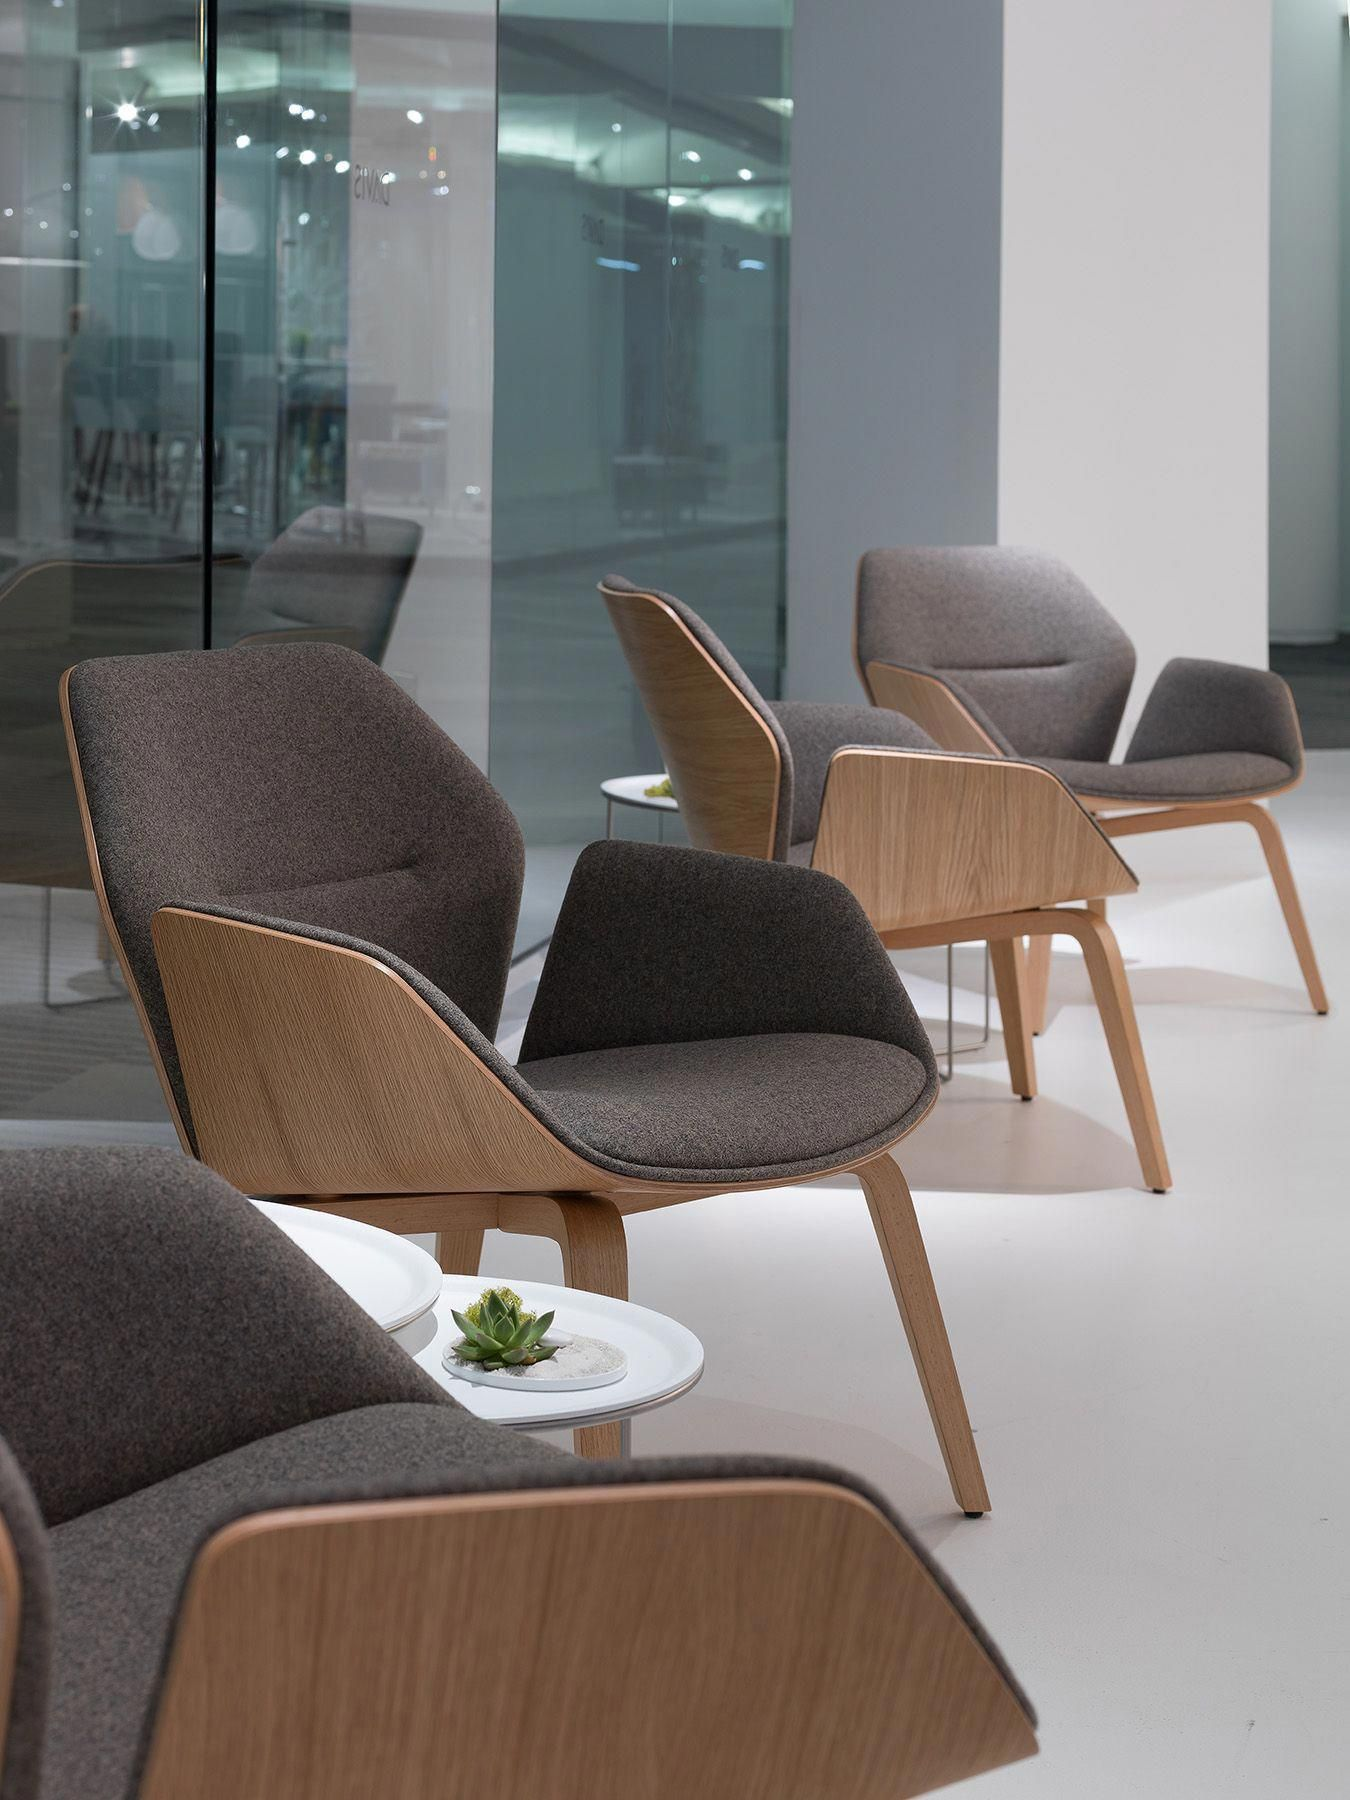 ginkgo lounge low back chairs from davis furniture neocon2016 rh pinterest com lobby chairs modern